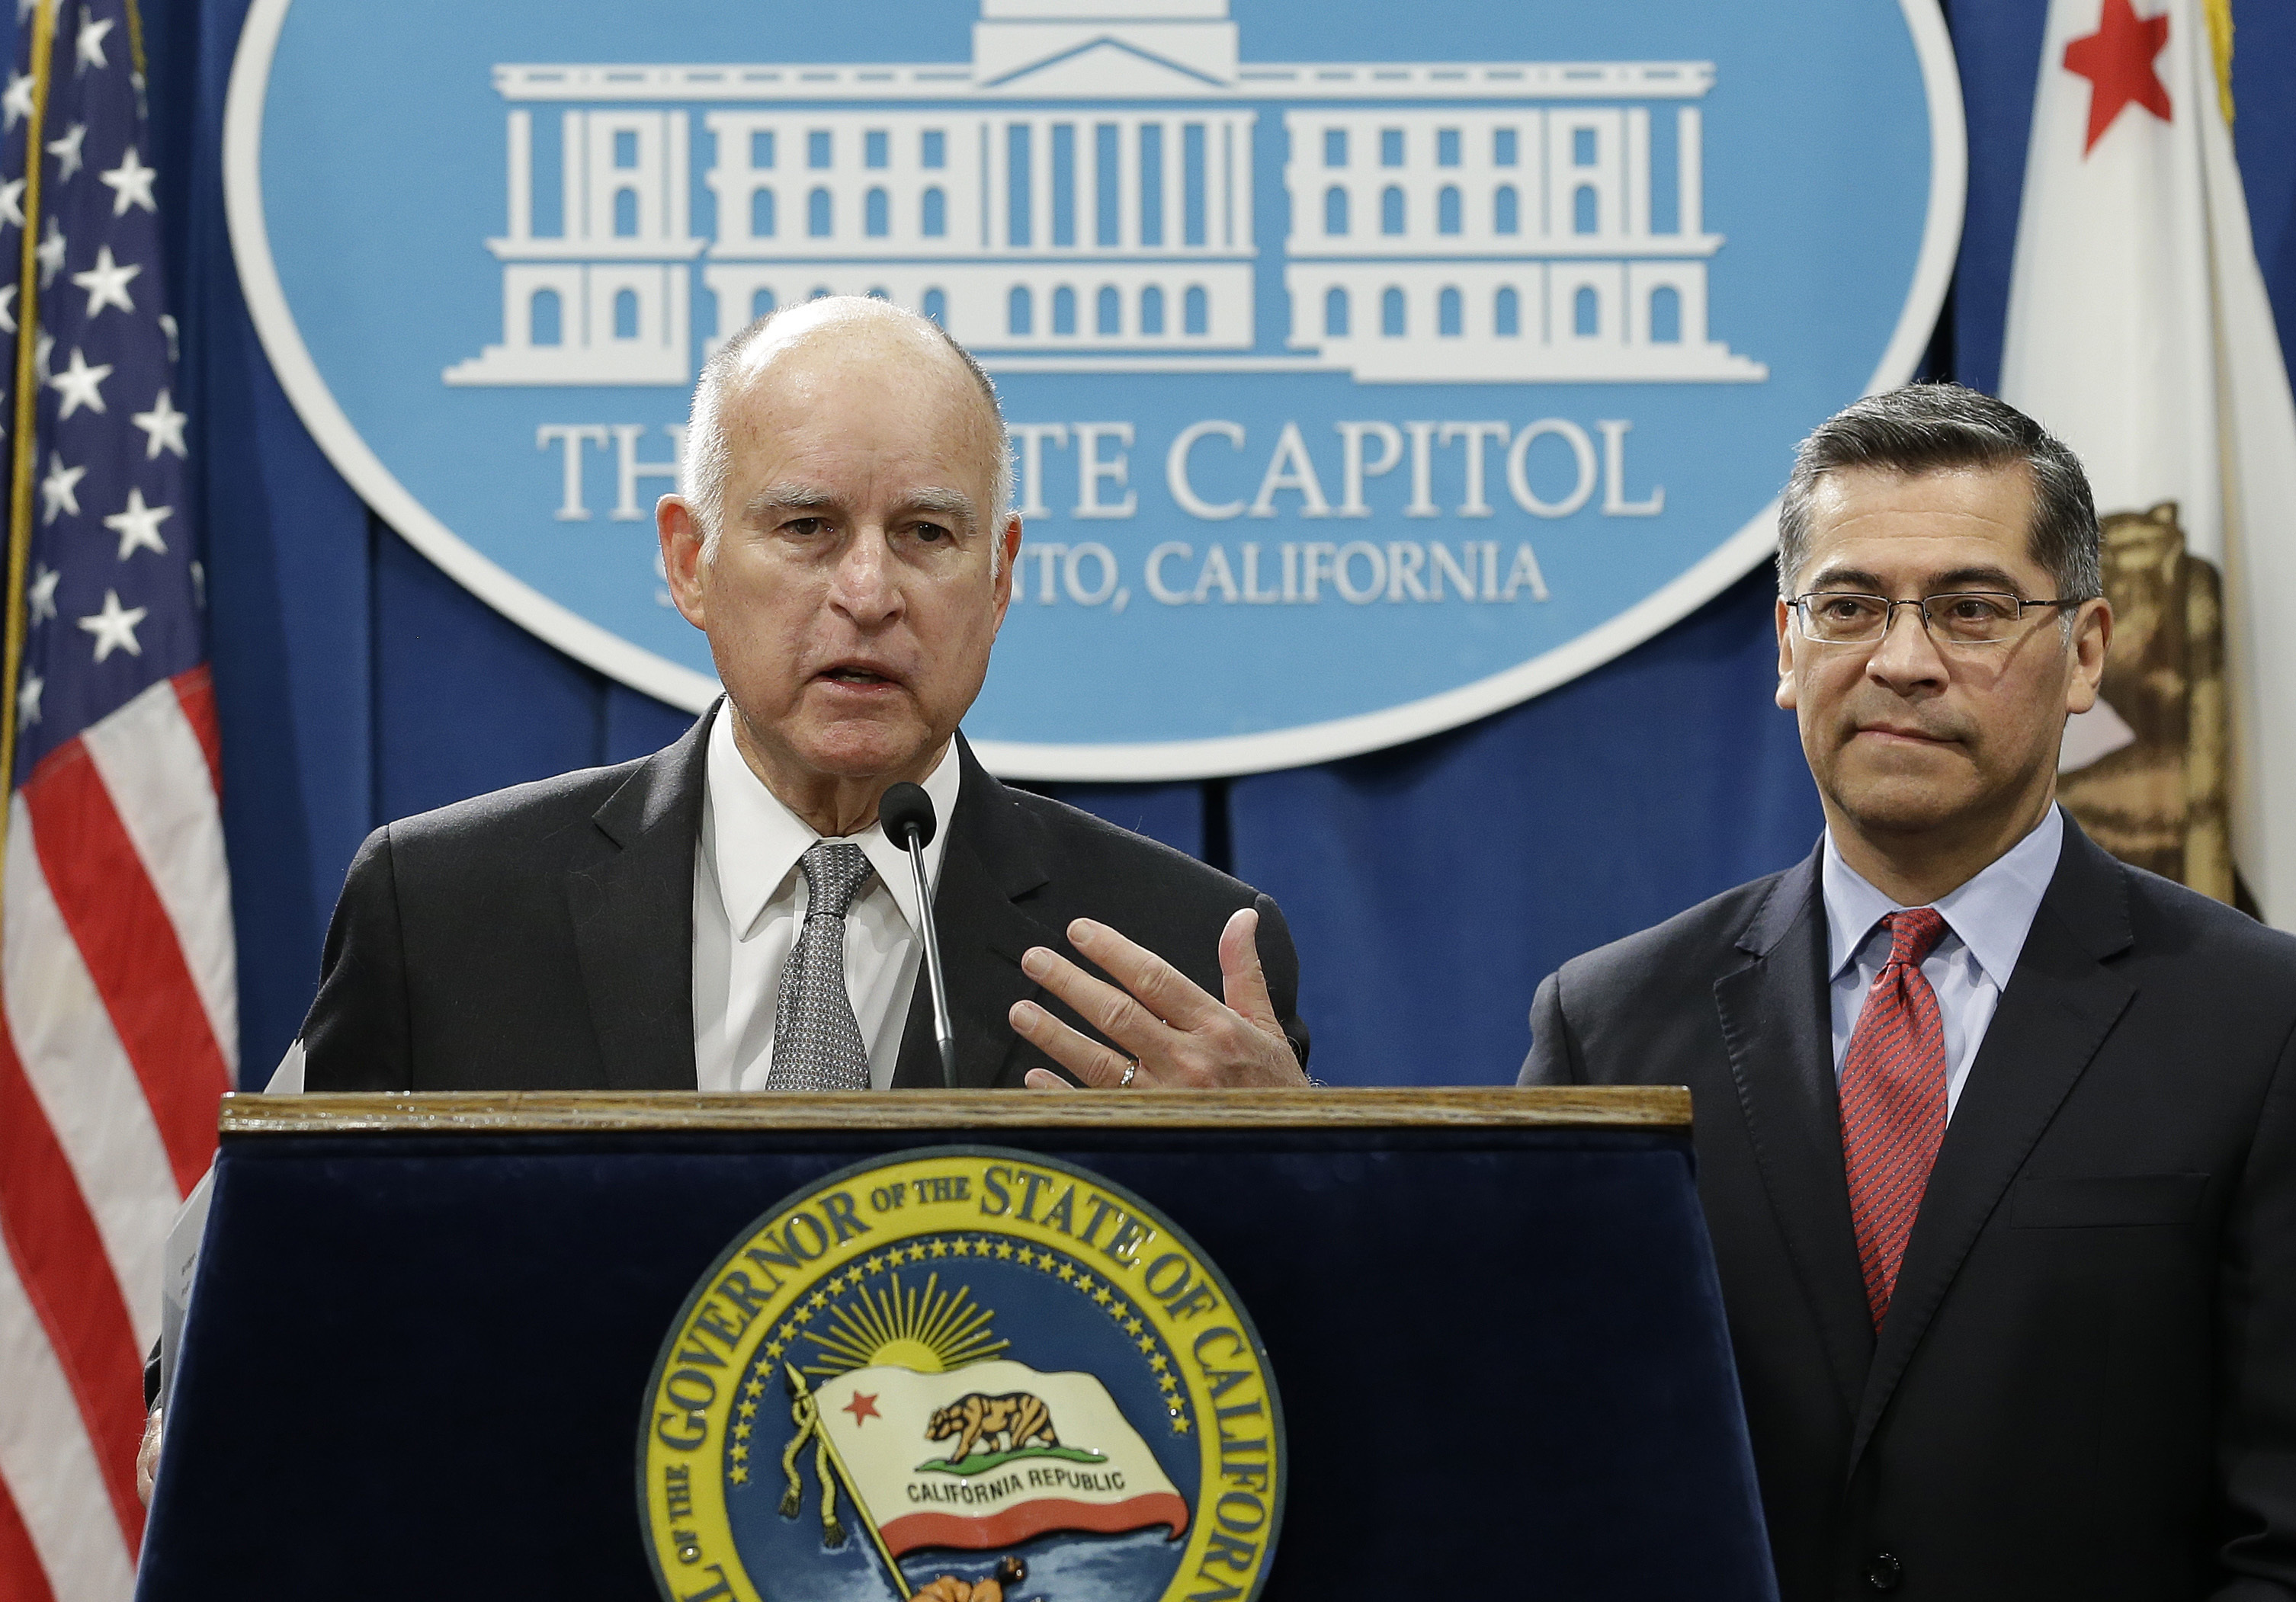 California Gov. Brown Denounces Jeff Sessions Over Federal Immigration Lawsuit